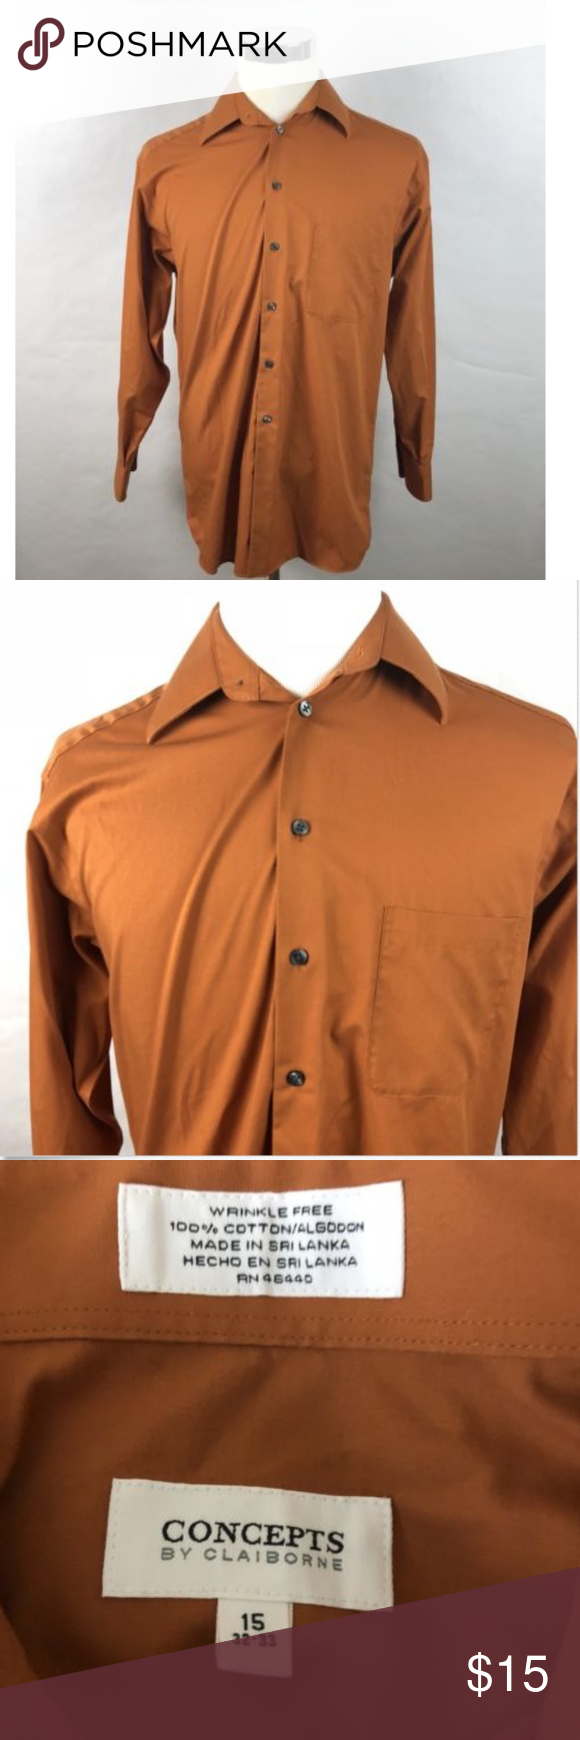 Concepts By Claiborne Dress Shirt In 2018 My Posh Closet